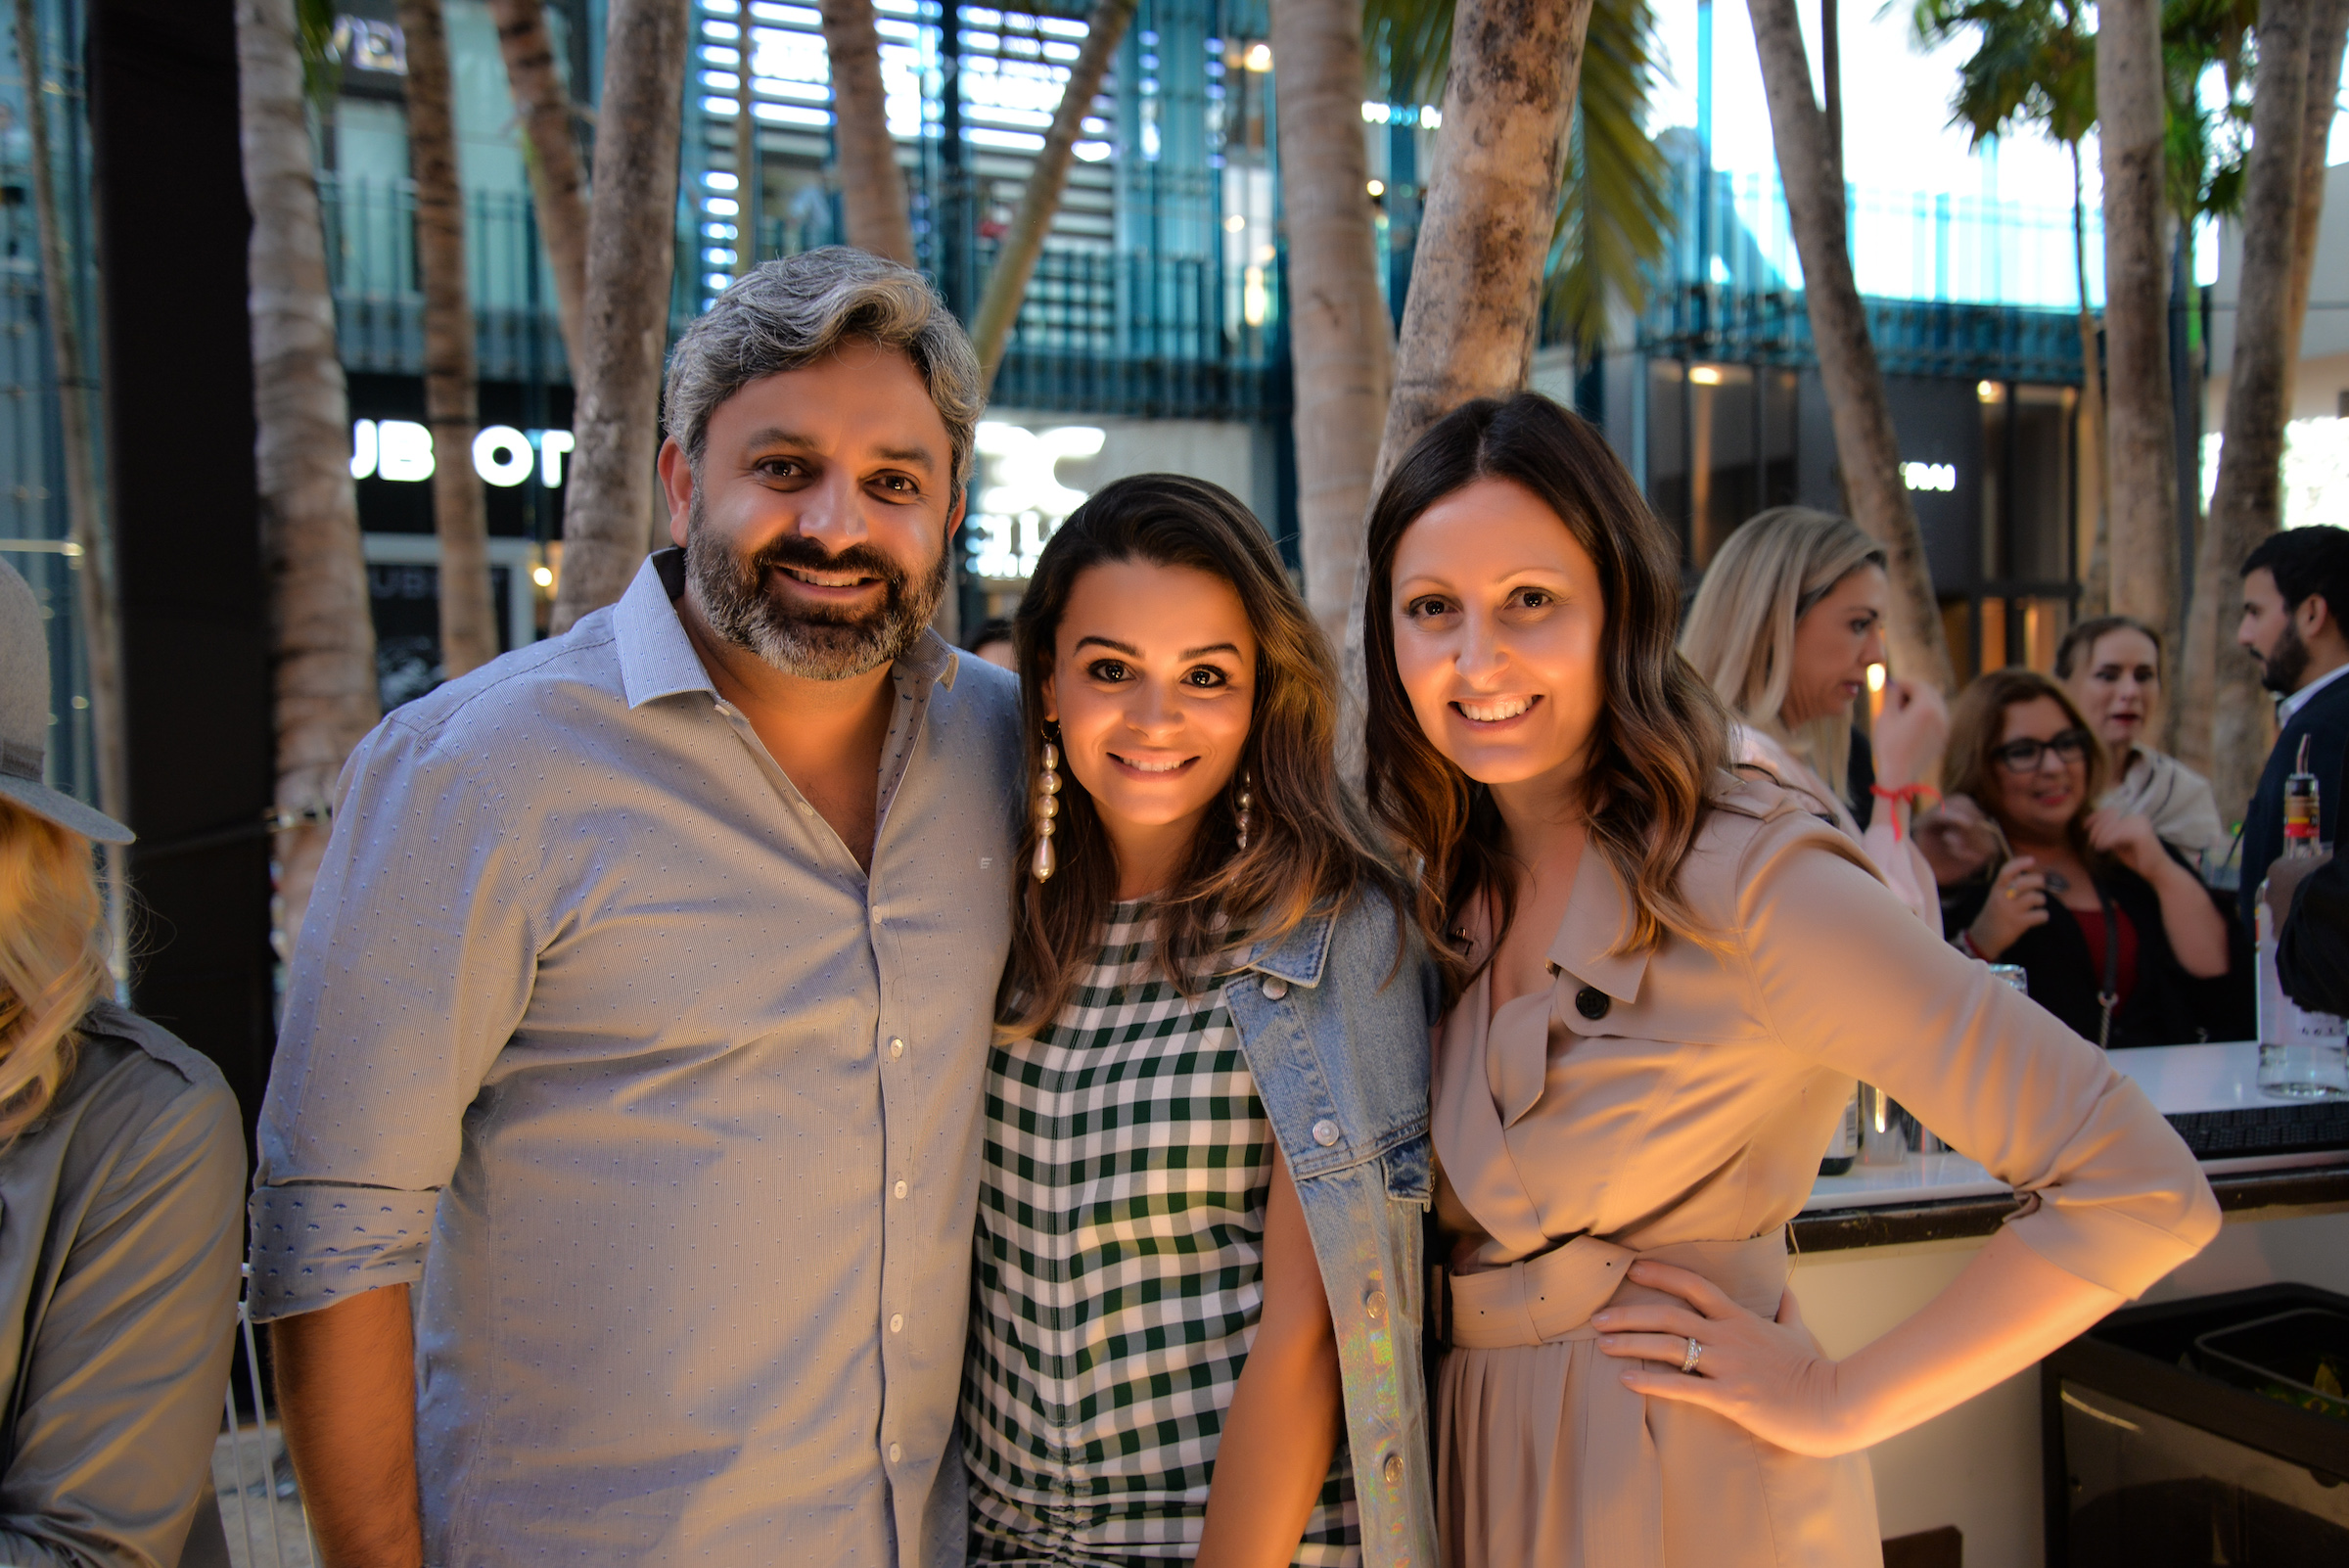 Paulo and Carol Tavares de Melo BrazilFoundation Miami PreGala Cocktail Reception 2018 Miami Design District Philanthropy